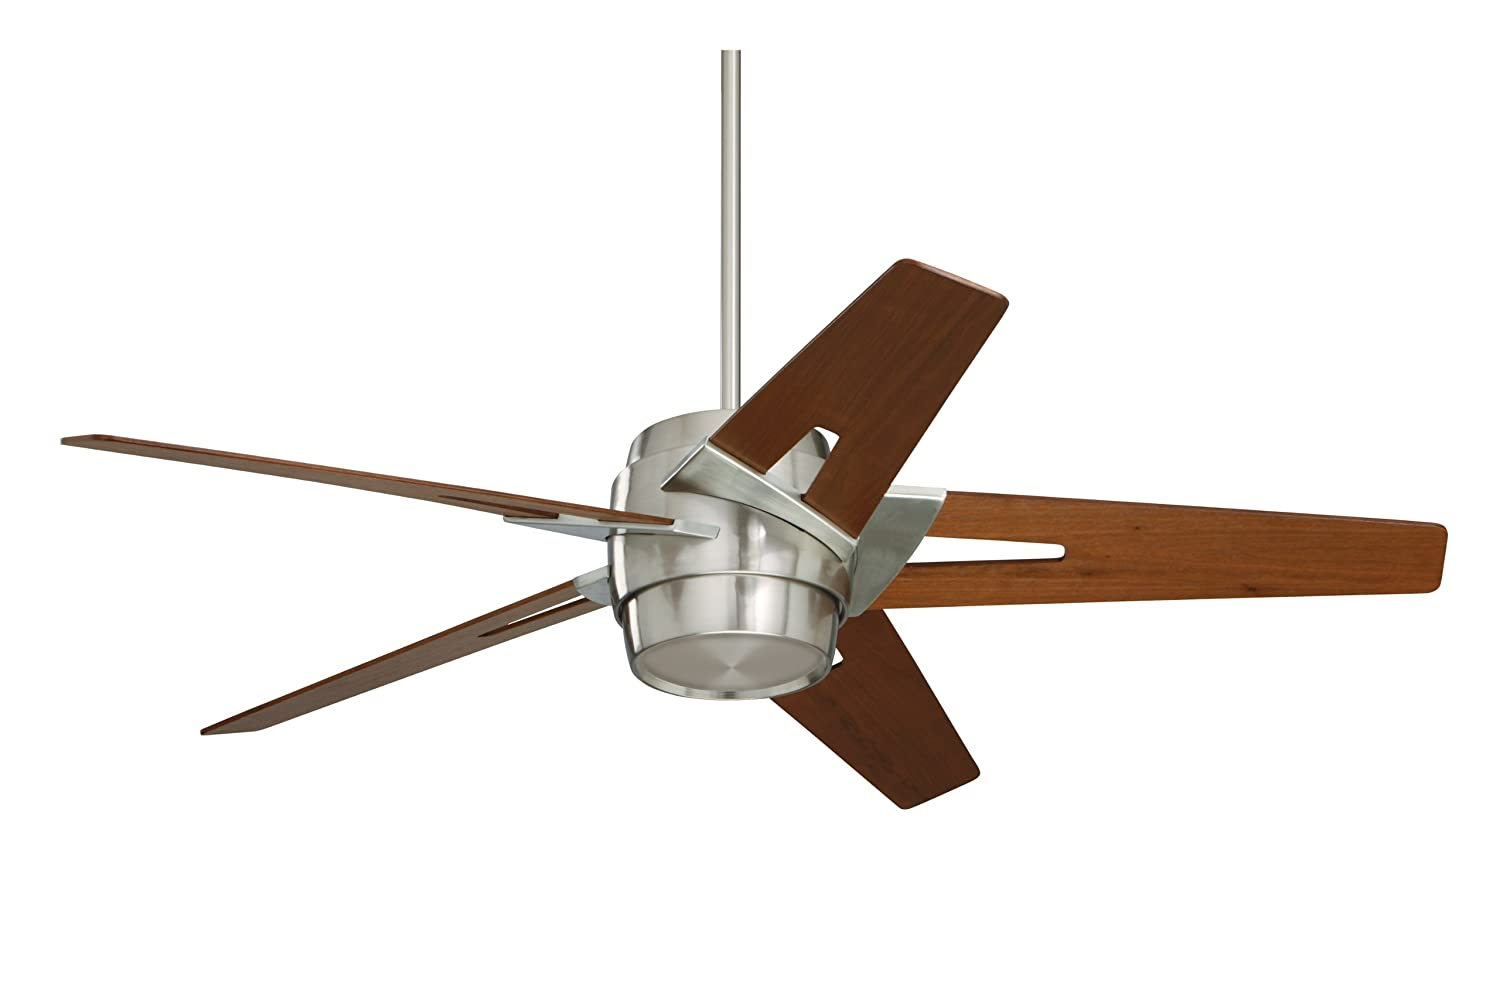 Unique Outdoor Ceiling Fans Part - 29: Emerson Ceiling Fans CF550WABS Luxe Eco Modern Ceiling Fan With Light And  Wall Control, 54-Inch Blades, Brushed Steel Finish - Close To Ceiling Light  ...